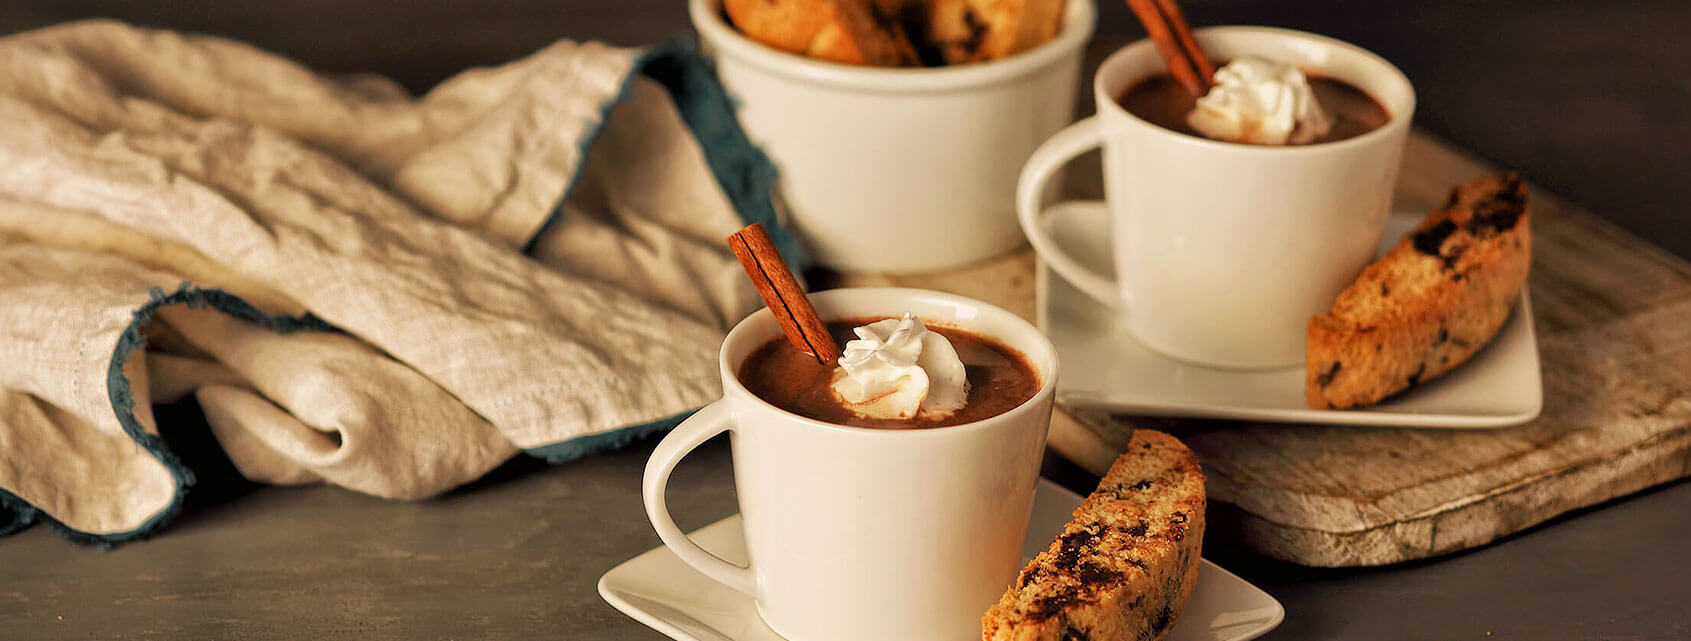 cinnamon-spiked-hot-cocoa-warm-winter-cocktails-cropped.jpg